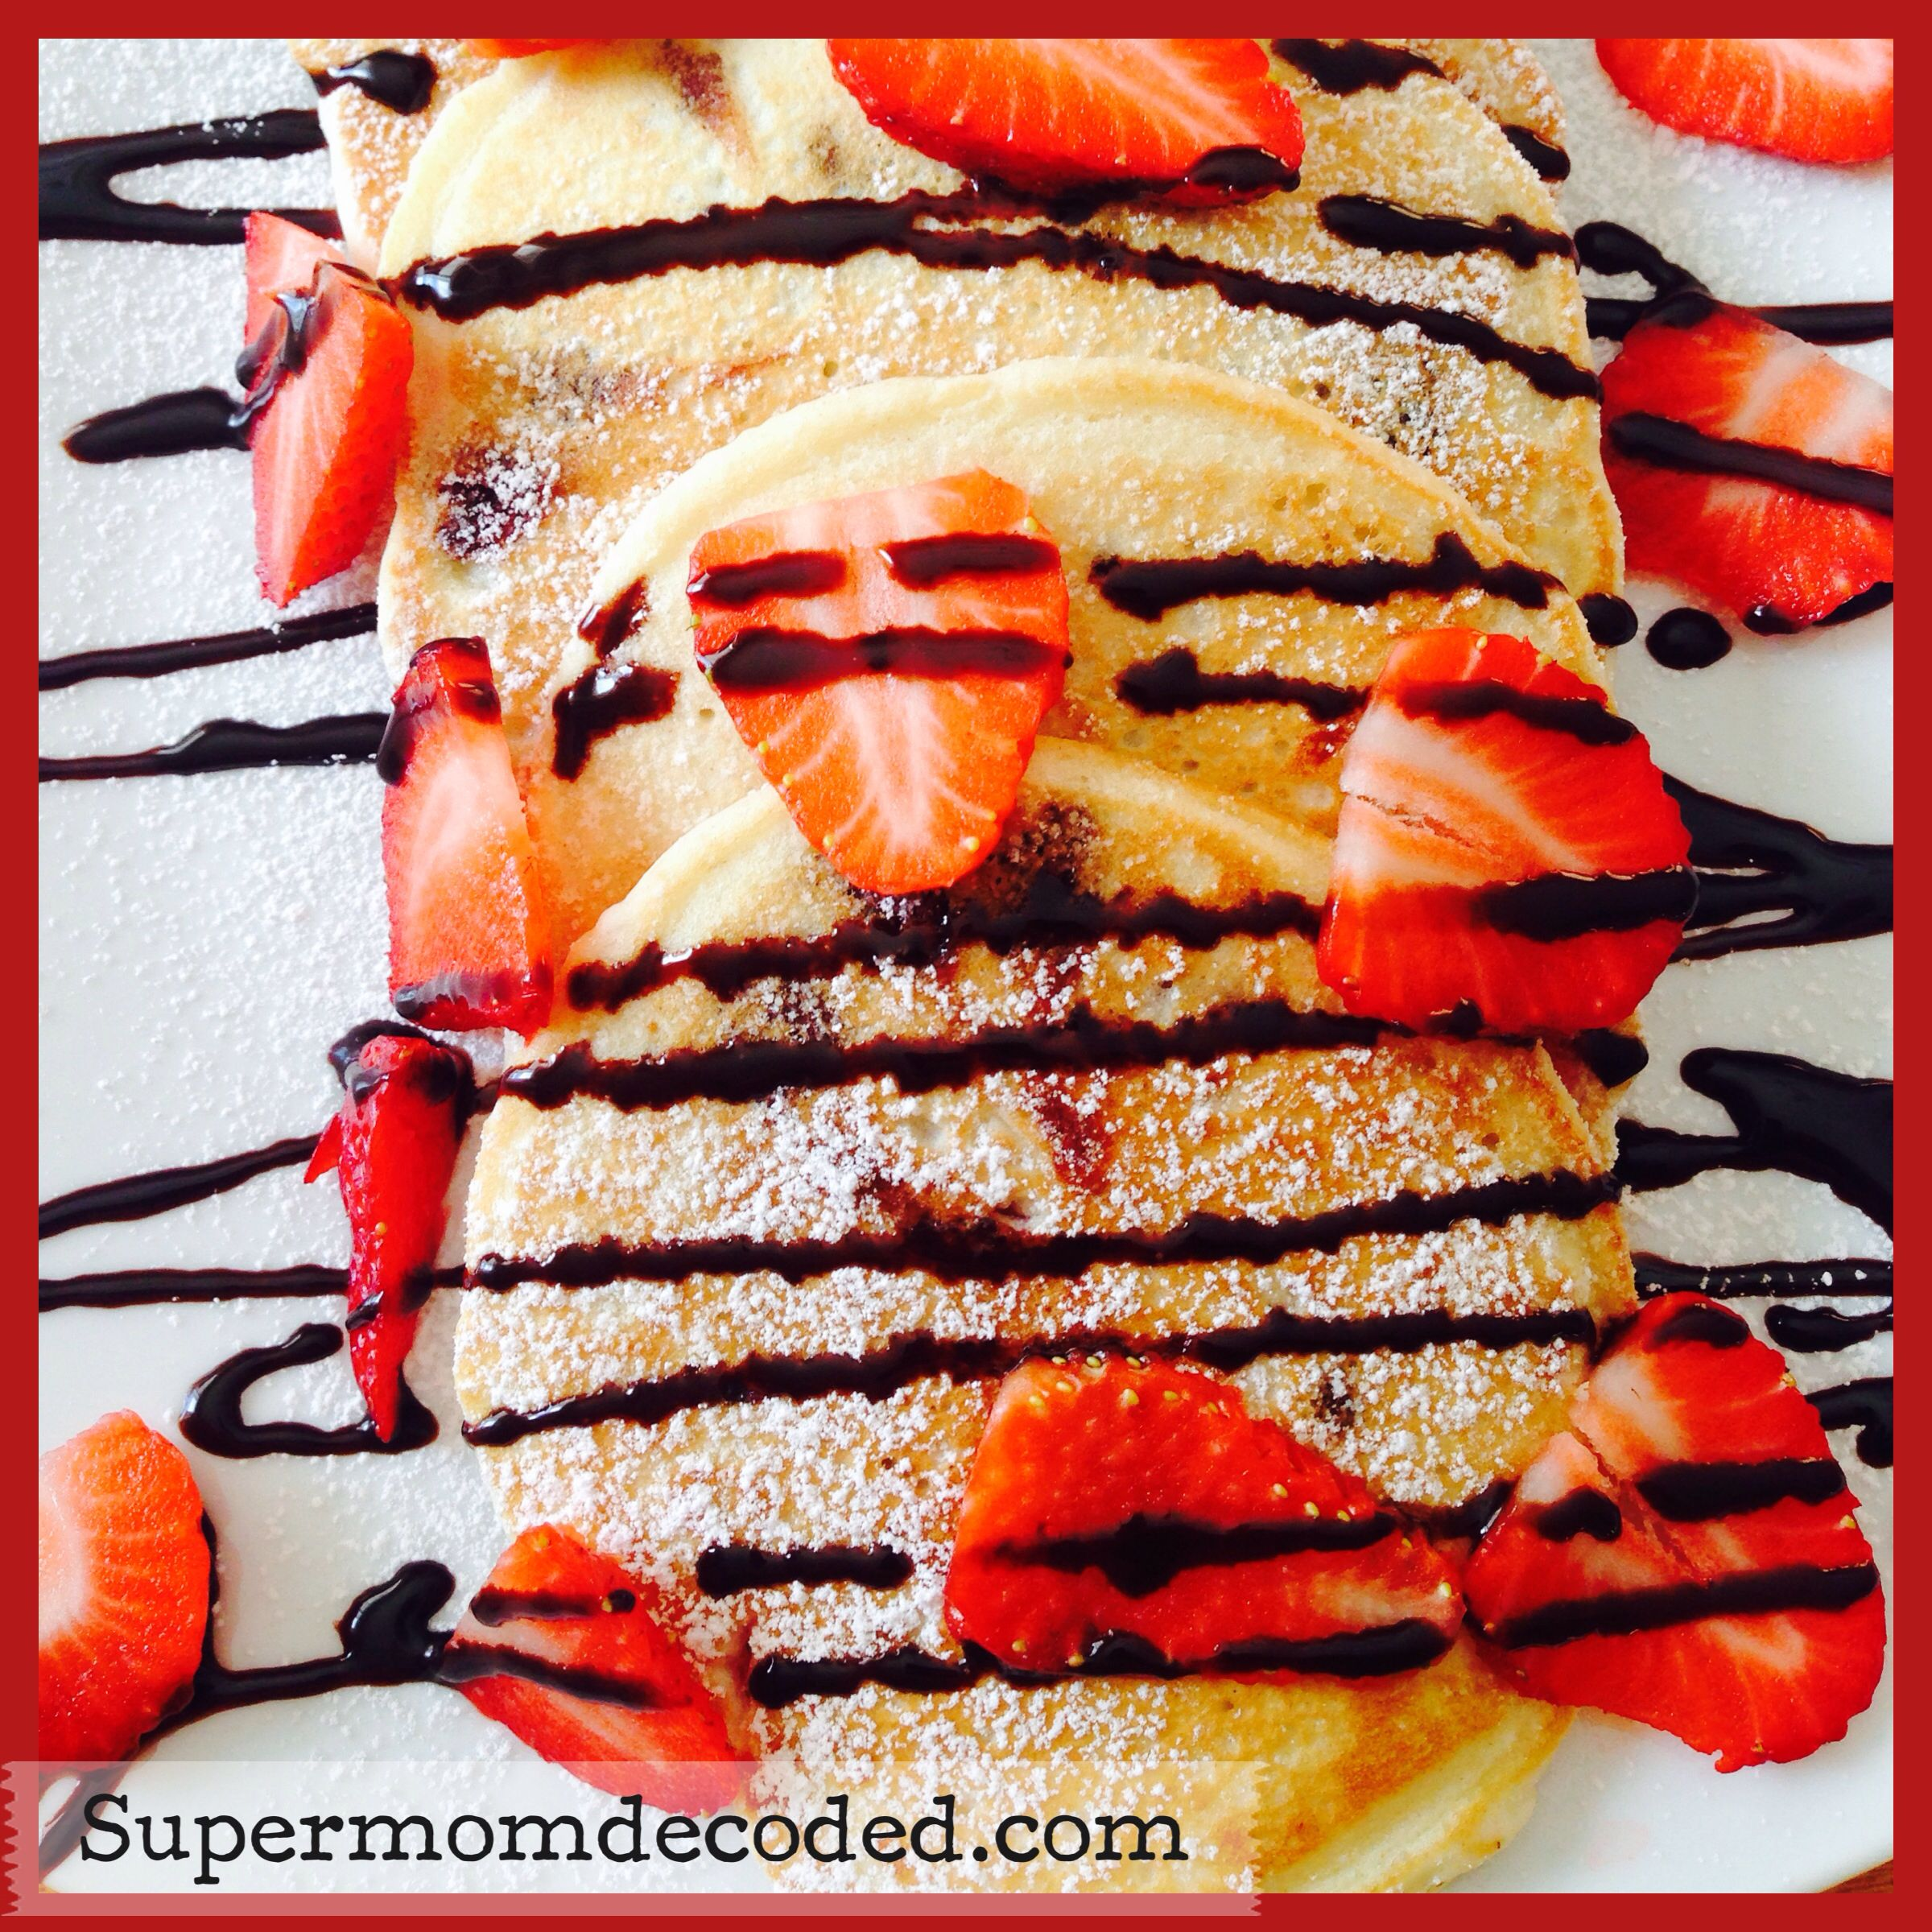 Chocolate chip strawberry pancakes. Great for Valentines Day breakfast treat.